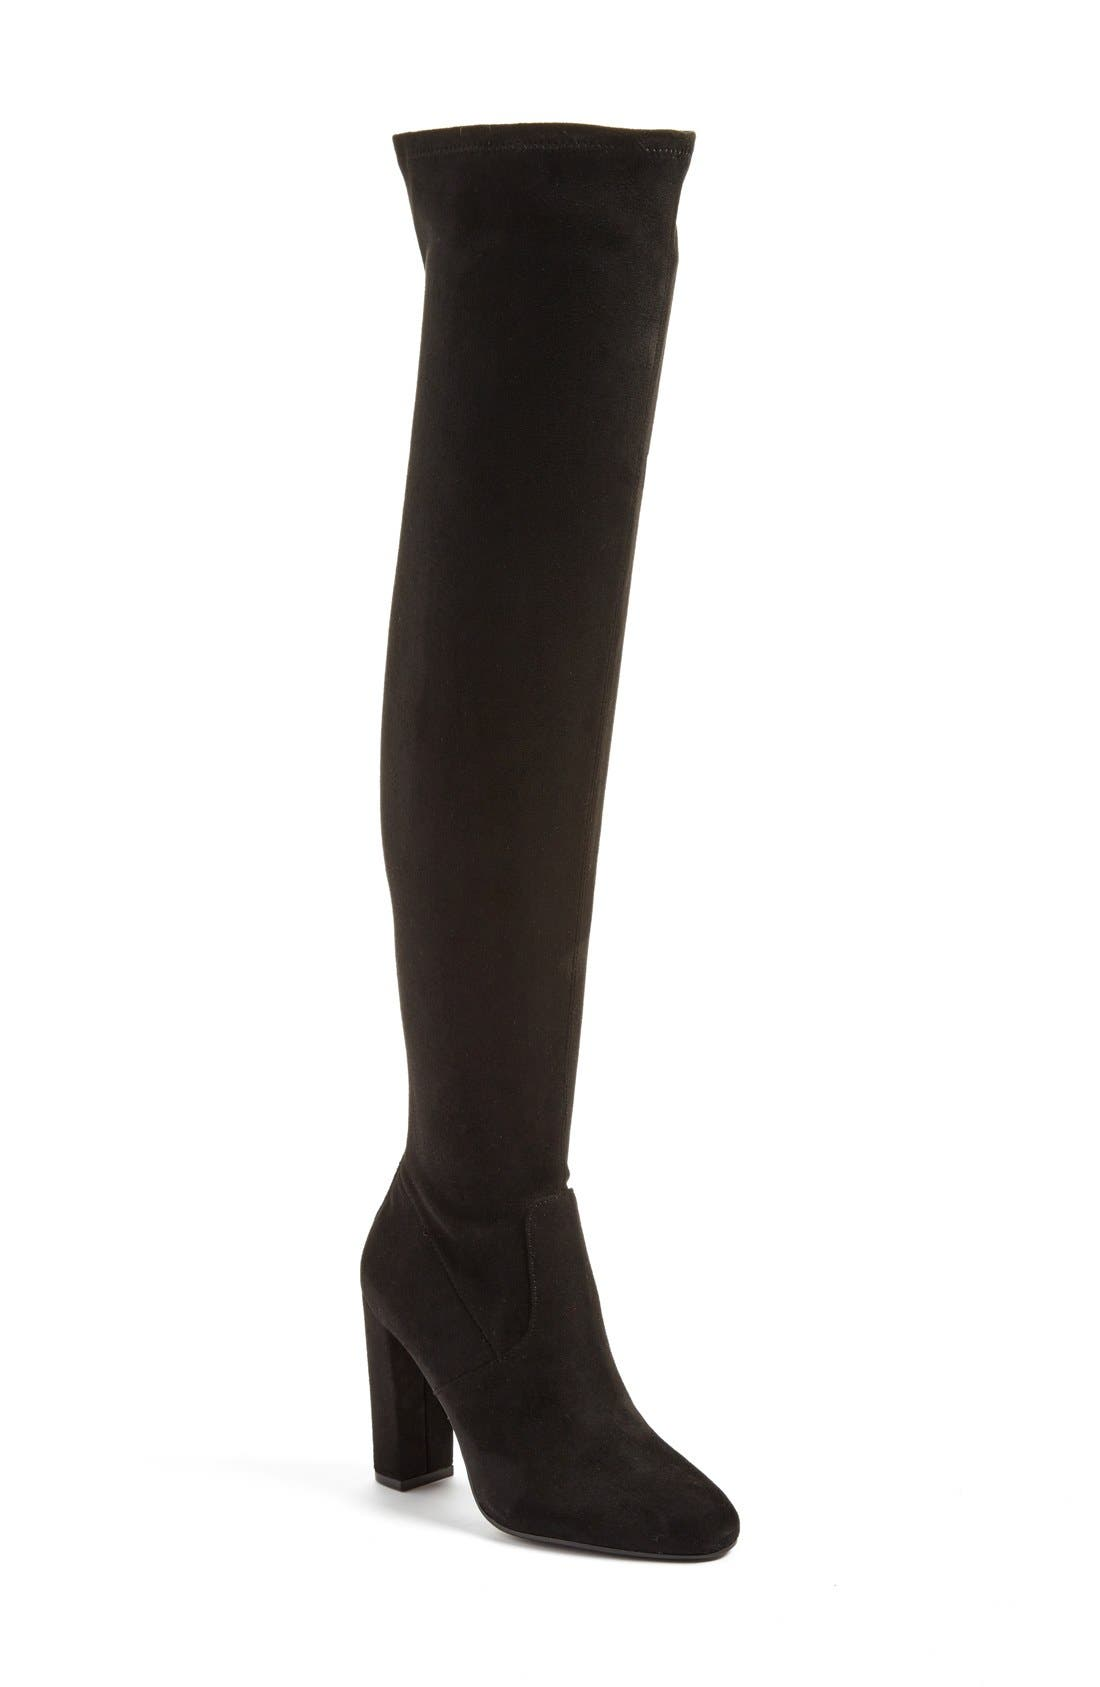 Main Image - Steve Madden 'Emotions' Stretch Over the Knee Boot (Women)